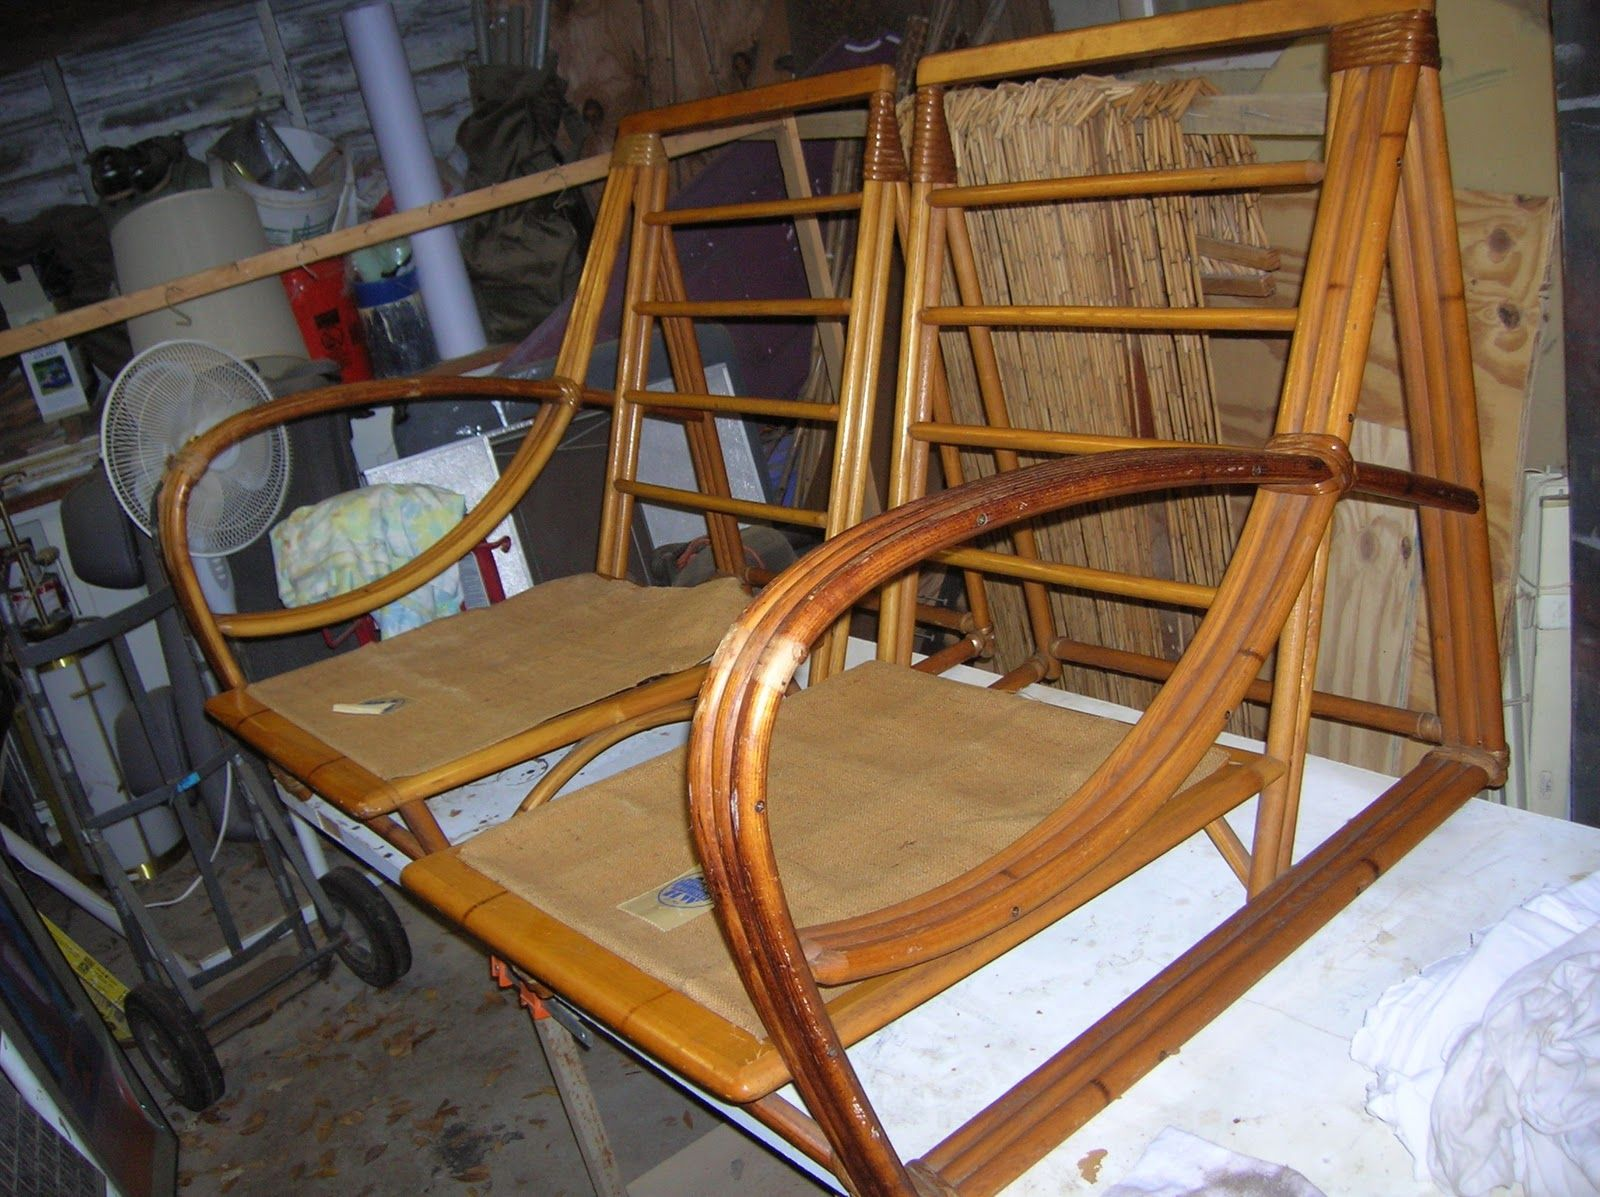 A Modern Line / Heywood Wakefield Refinishing And Other Mid .